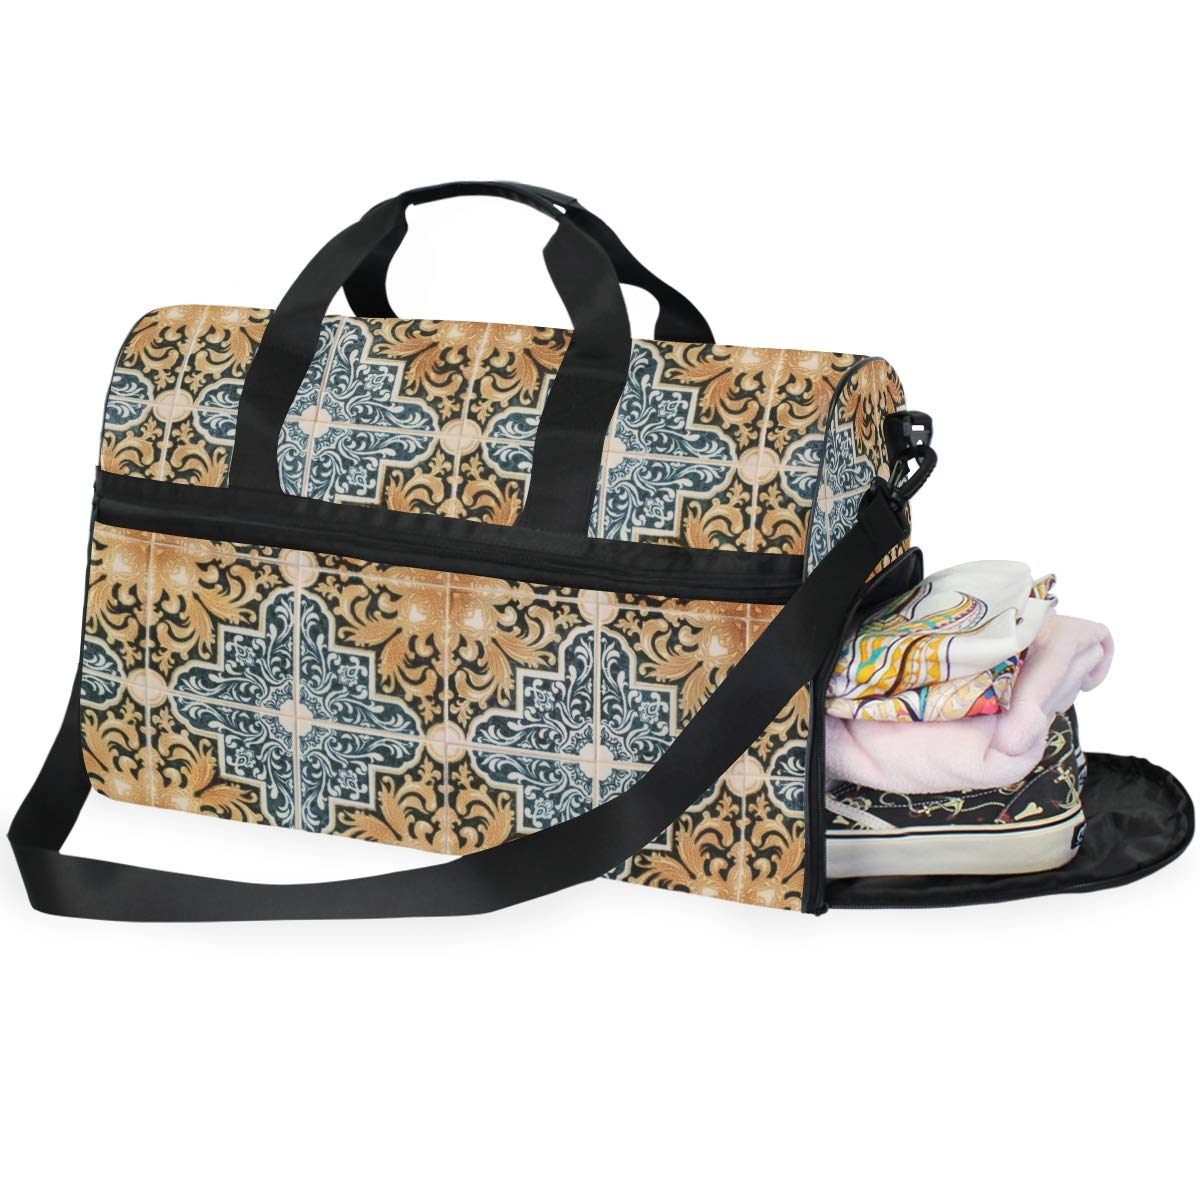 FAJRO Gym Bag Travel Duffel Express Weekender Bag Ivy Flourishment Carry On Luggage with Shoe Pouch